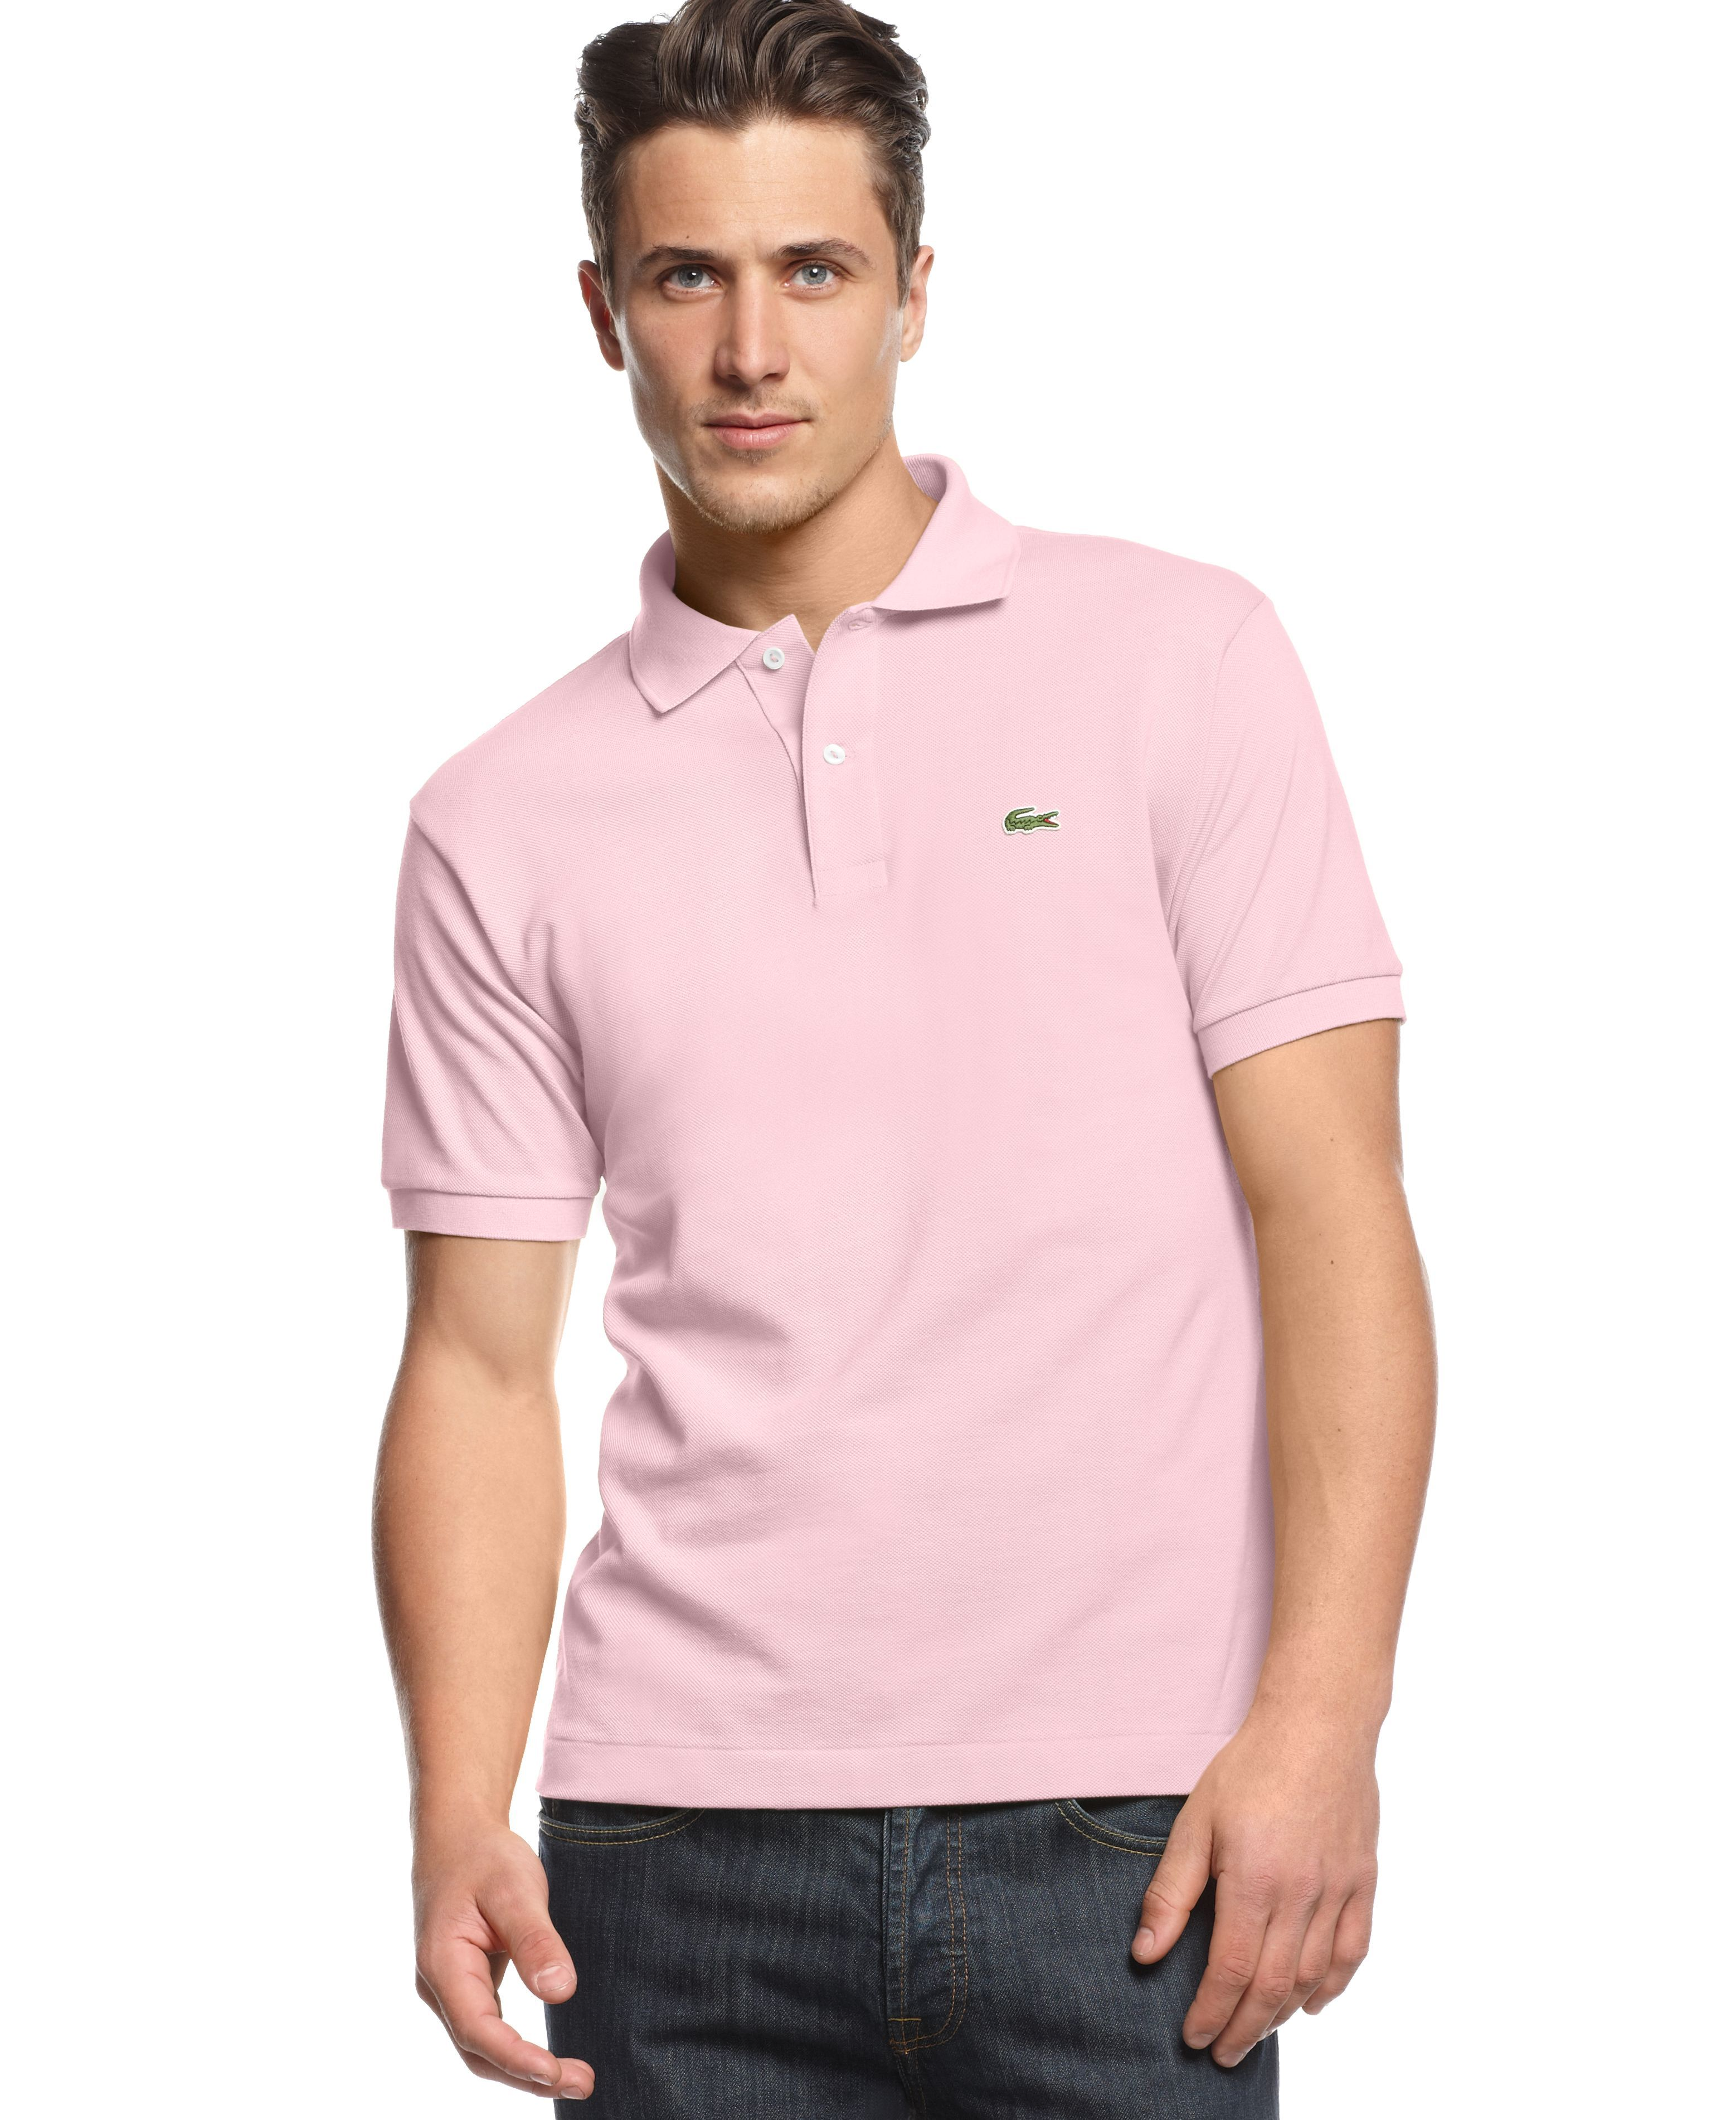 ea6da3ce7 Lacoste Core Polo Shirts